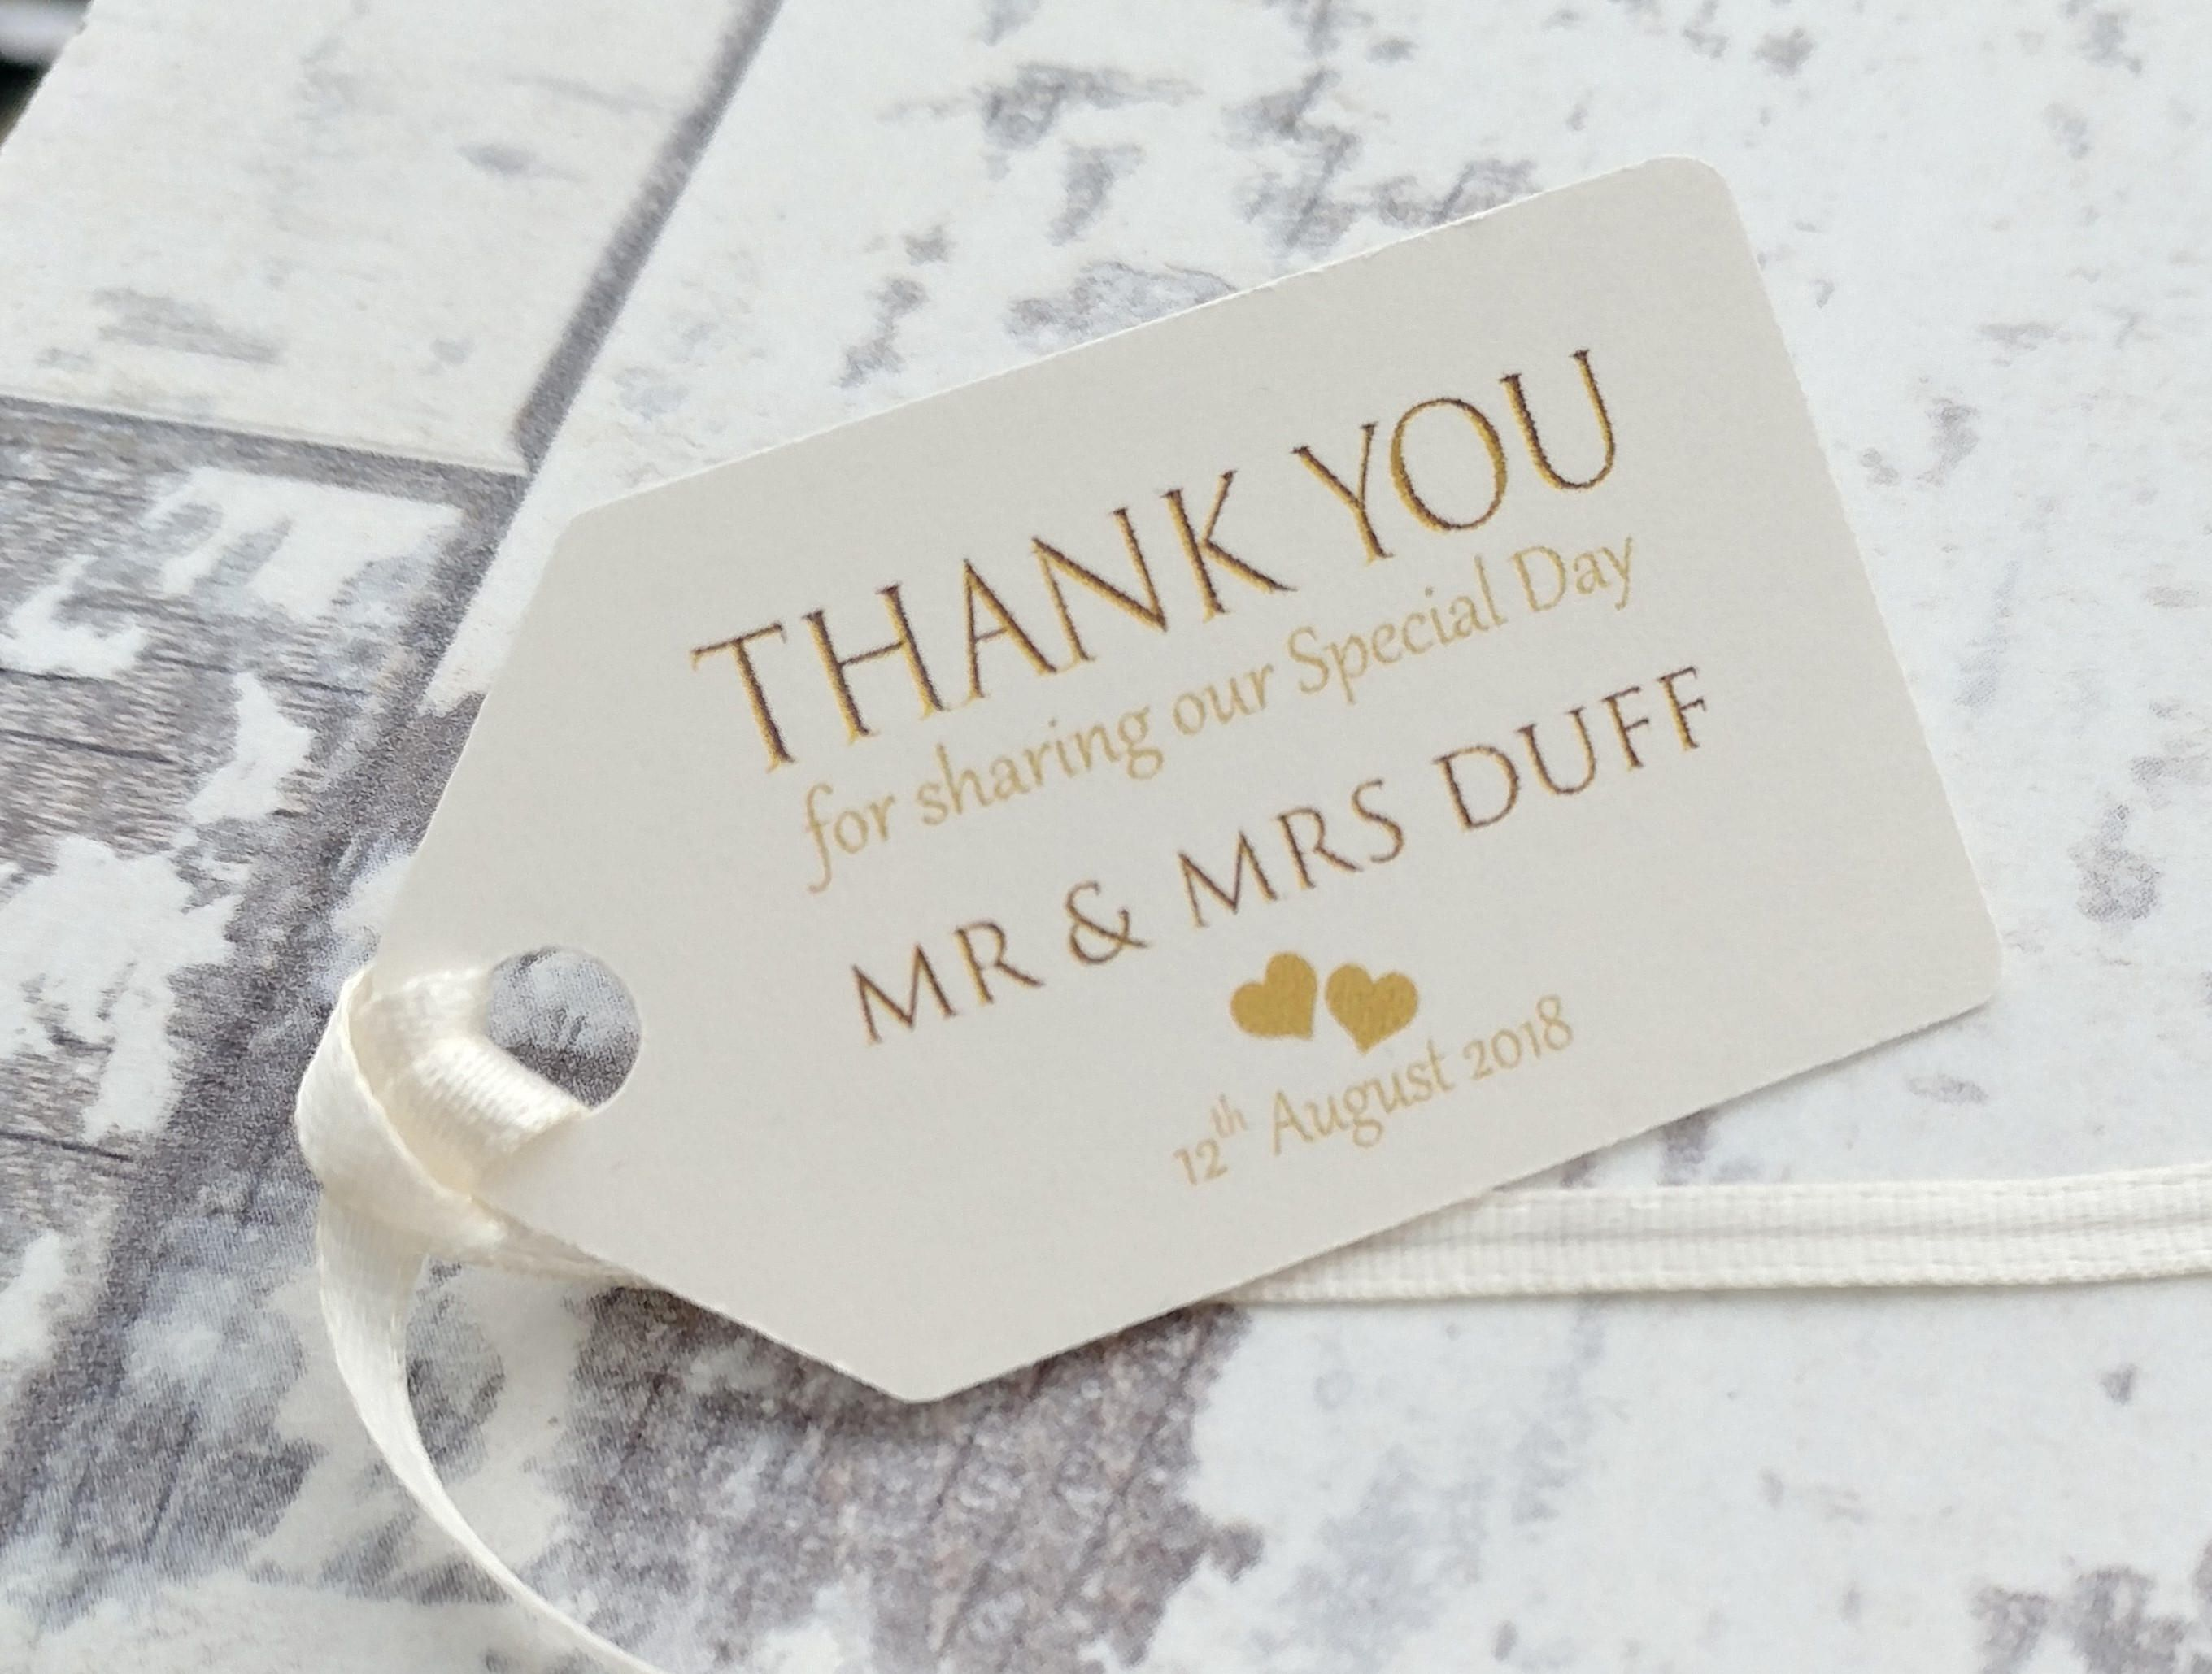 10 X Personalised Wedding Favour Tags Thank You For Sharing Our Special Day Personalized Wedding Favor Tags Wedding Favor Tags Personalized Wedding